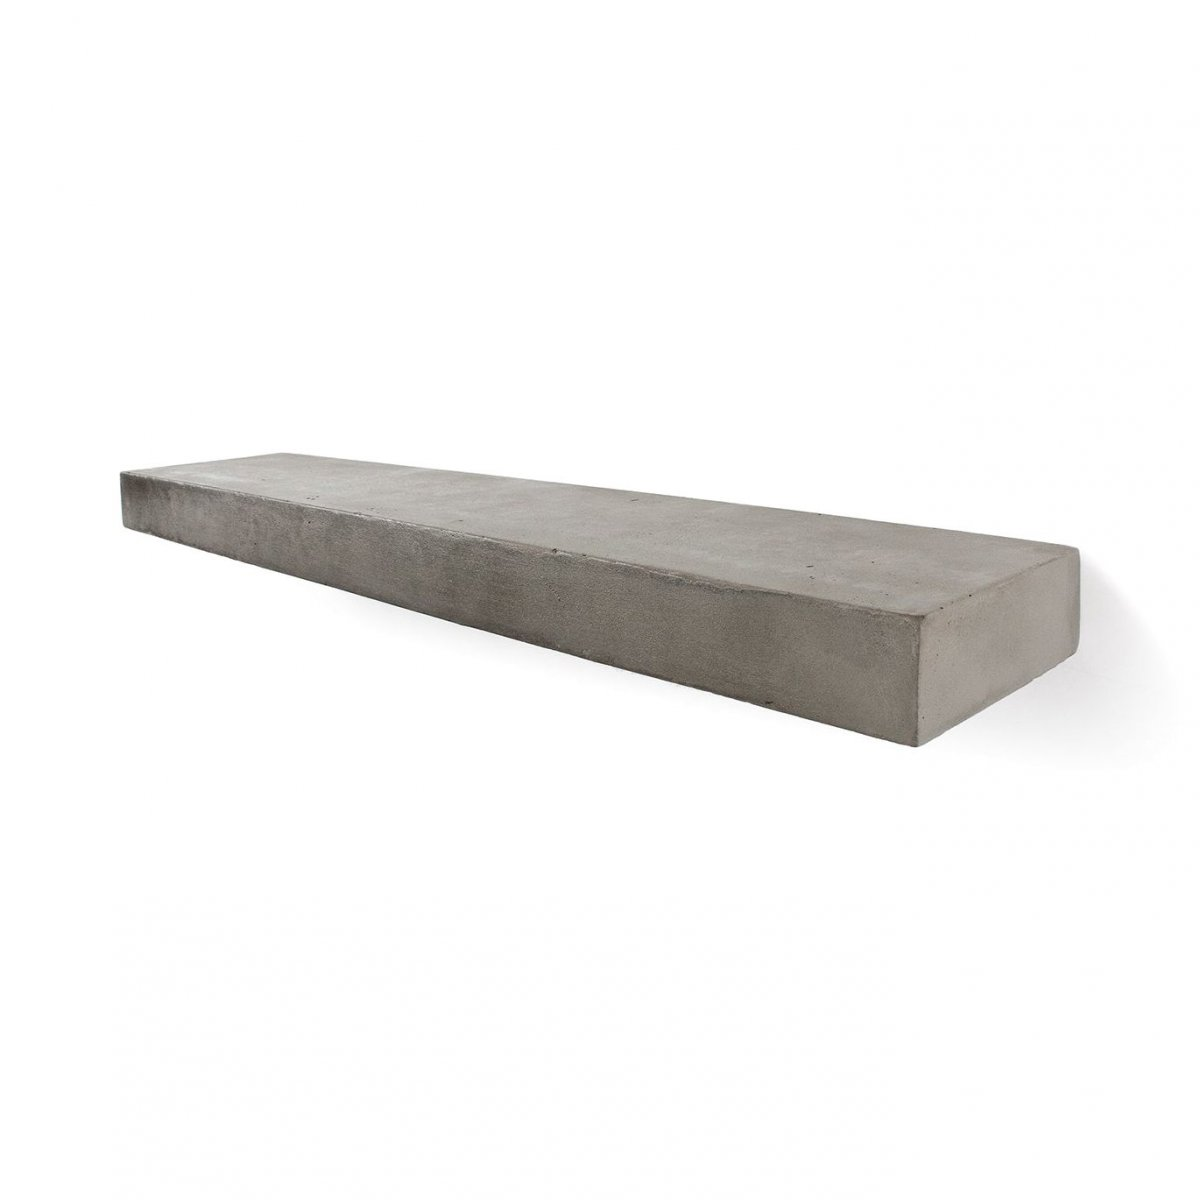 Sliced S Concrete Shelf.